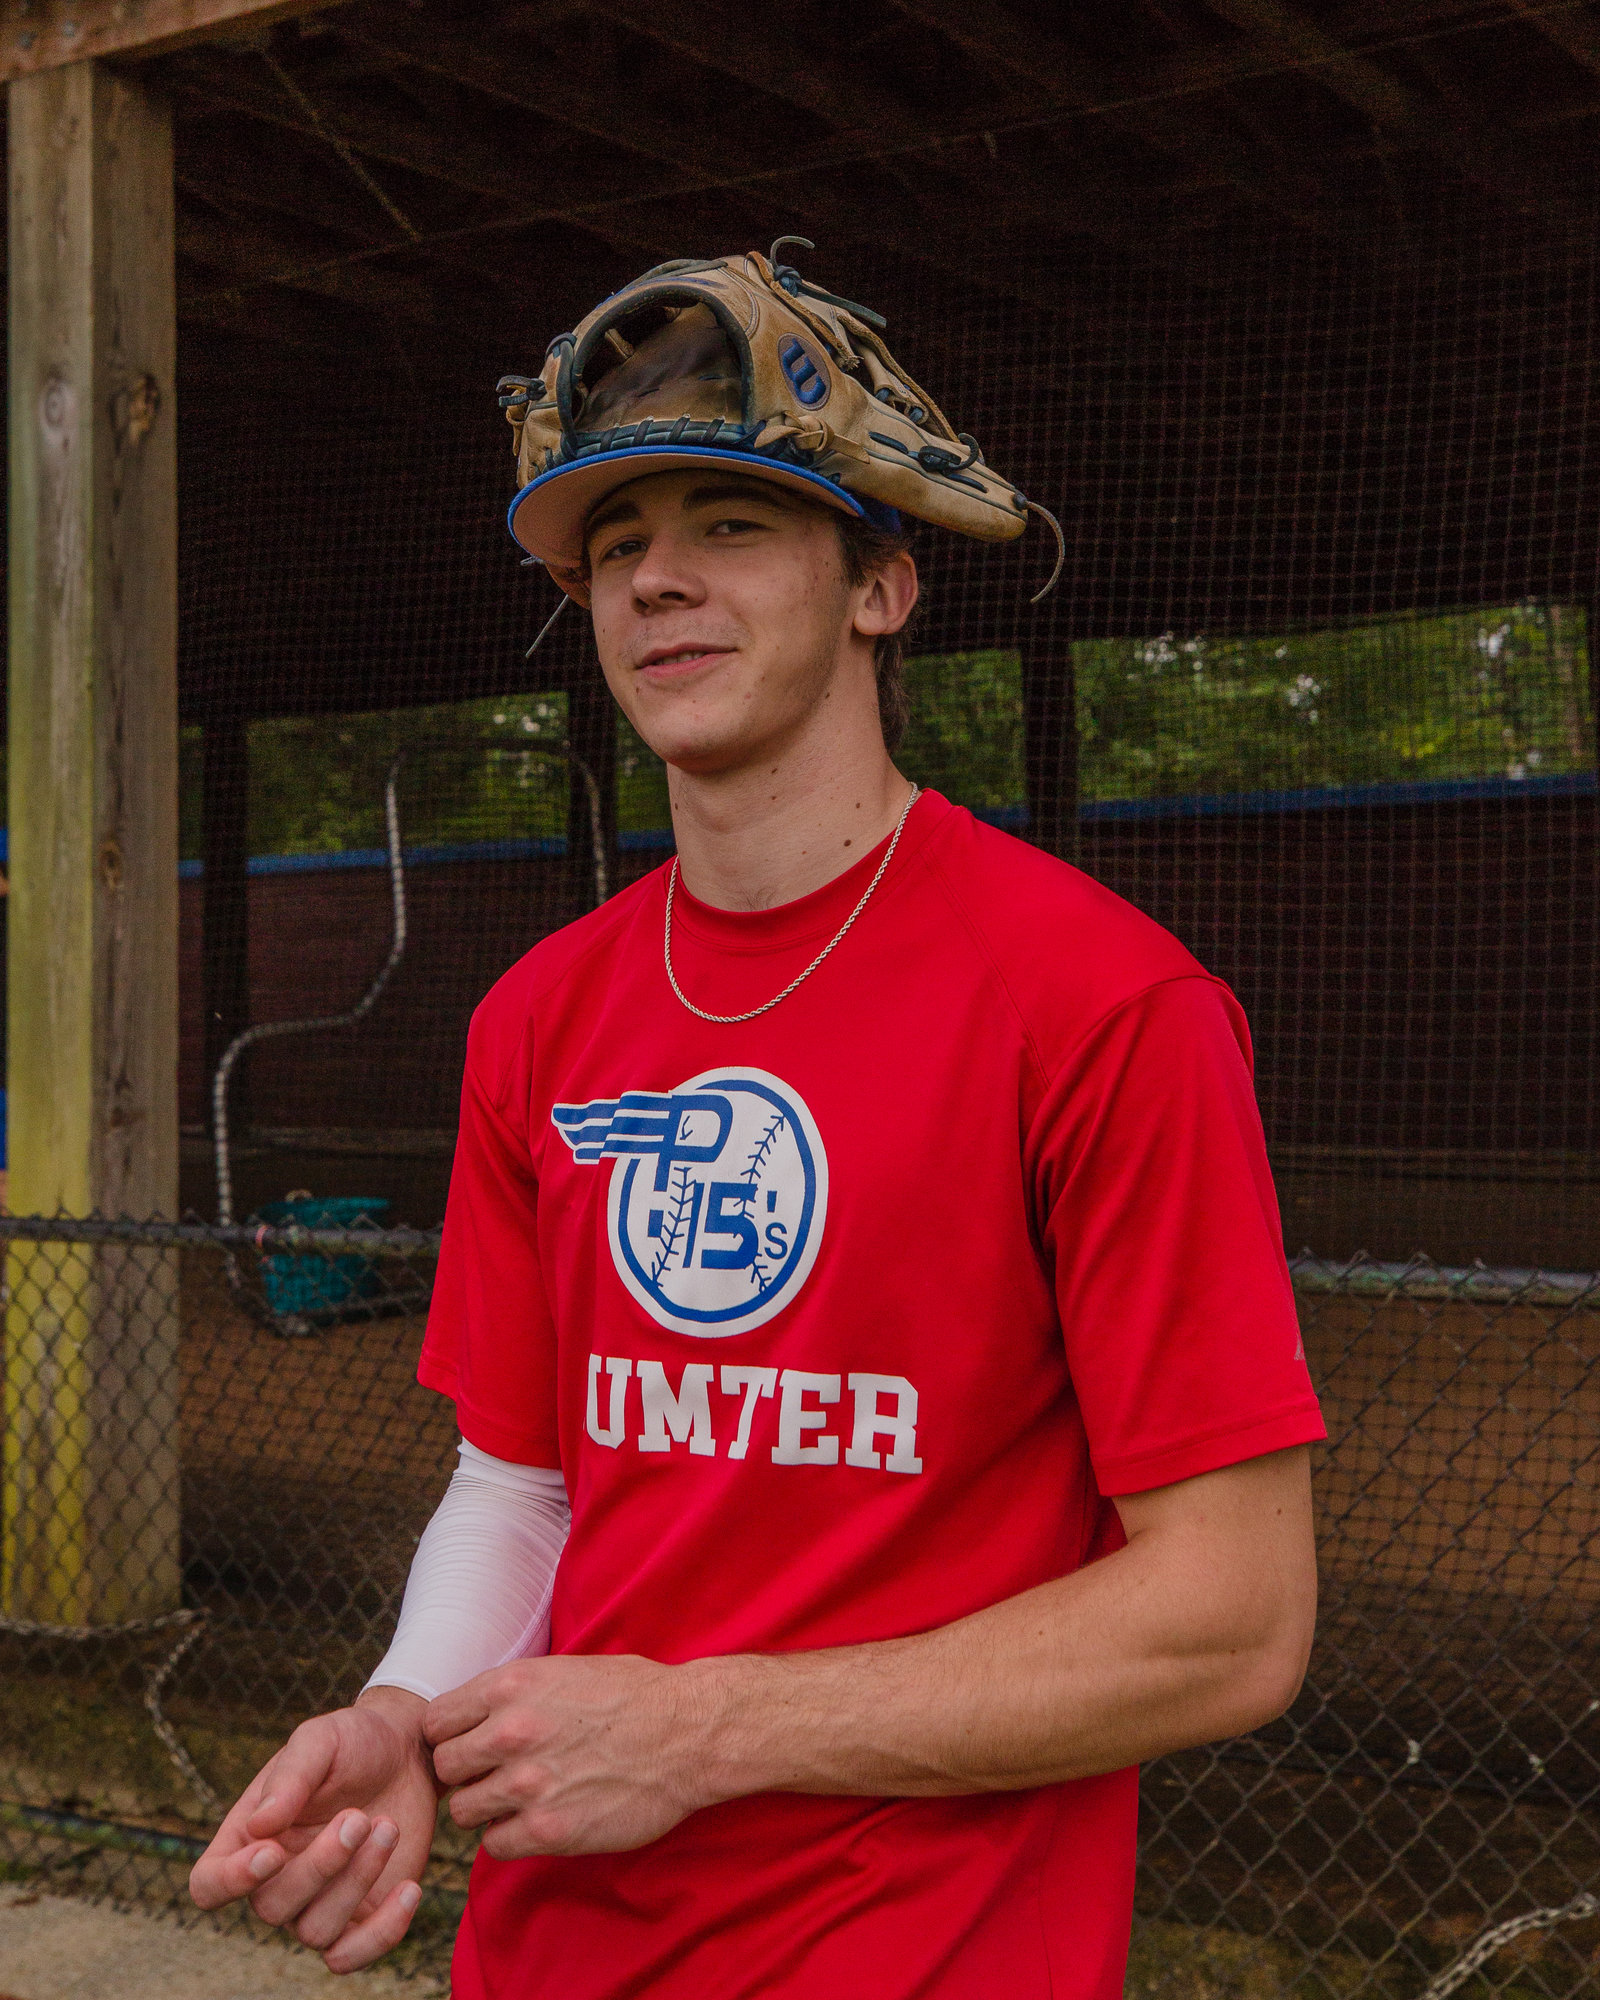 Jackson Hoshour at the P15s first practice following the cancellation of the American Legion season.